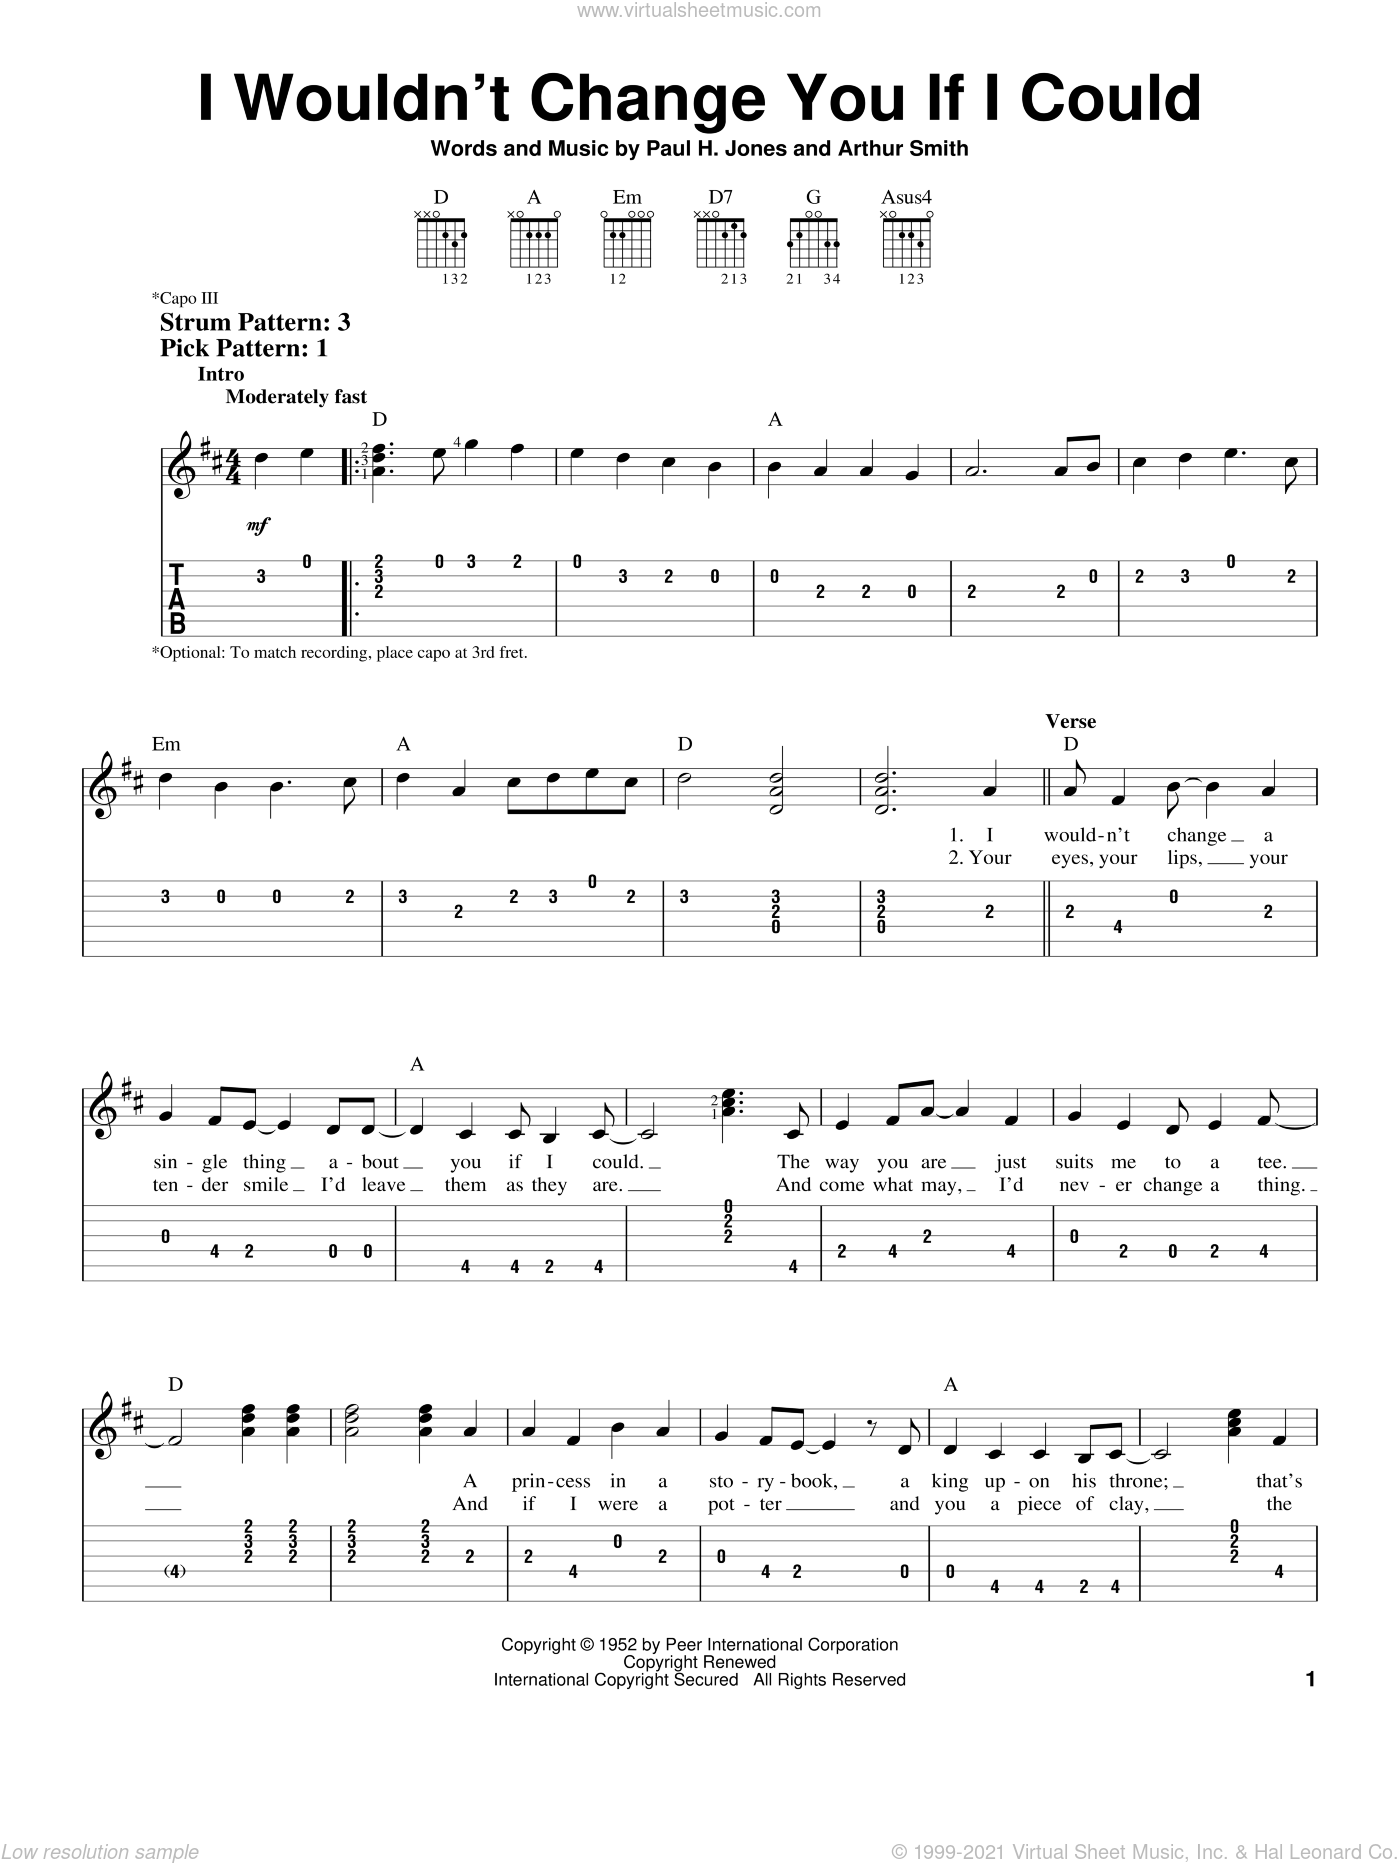 I Wouldn't Change You If I Could sheet music for guitar solo (easy tablature) by Ricky Skaggs, Arthur Smith and Paul H. Jones, easy guitar (easy tablature)